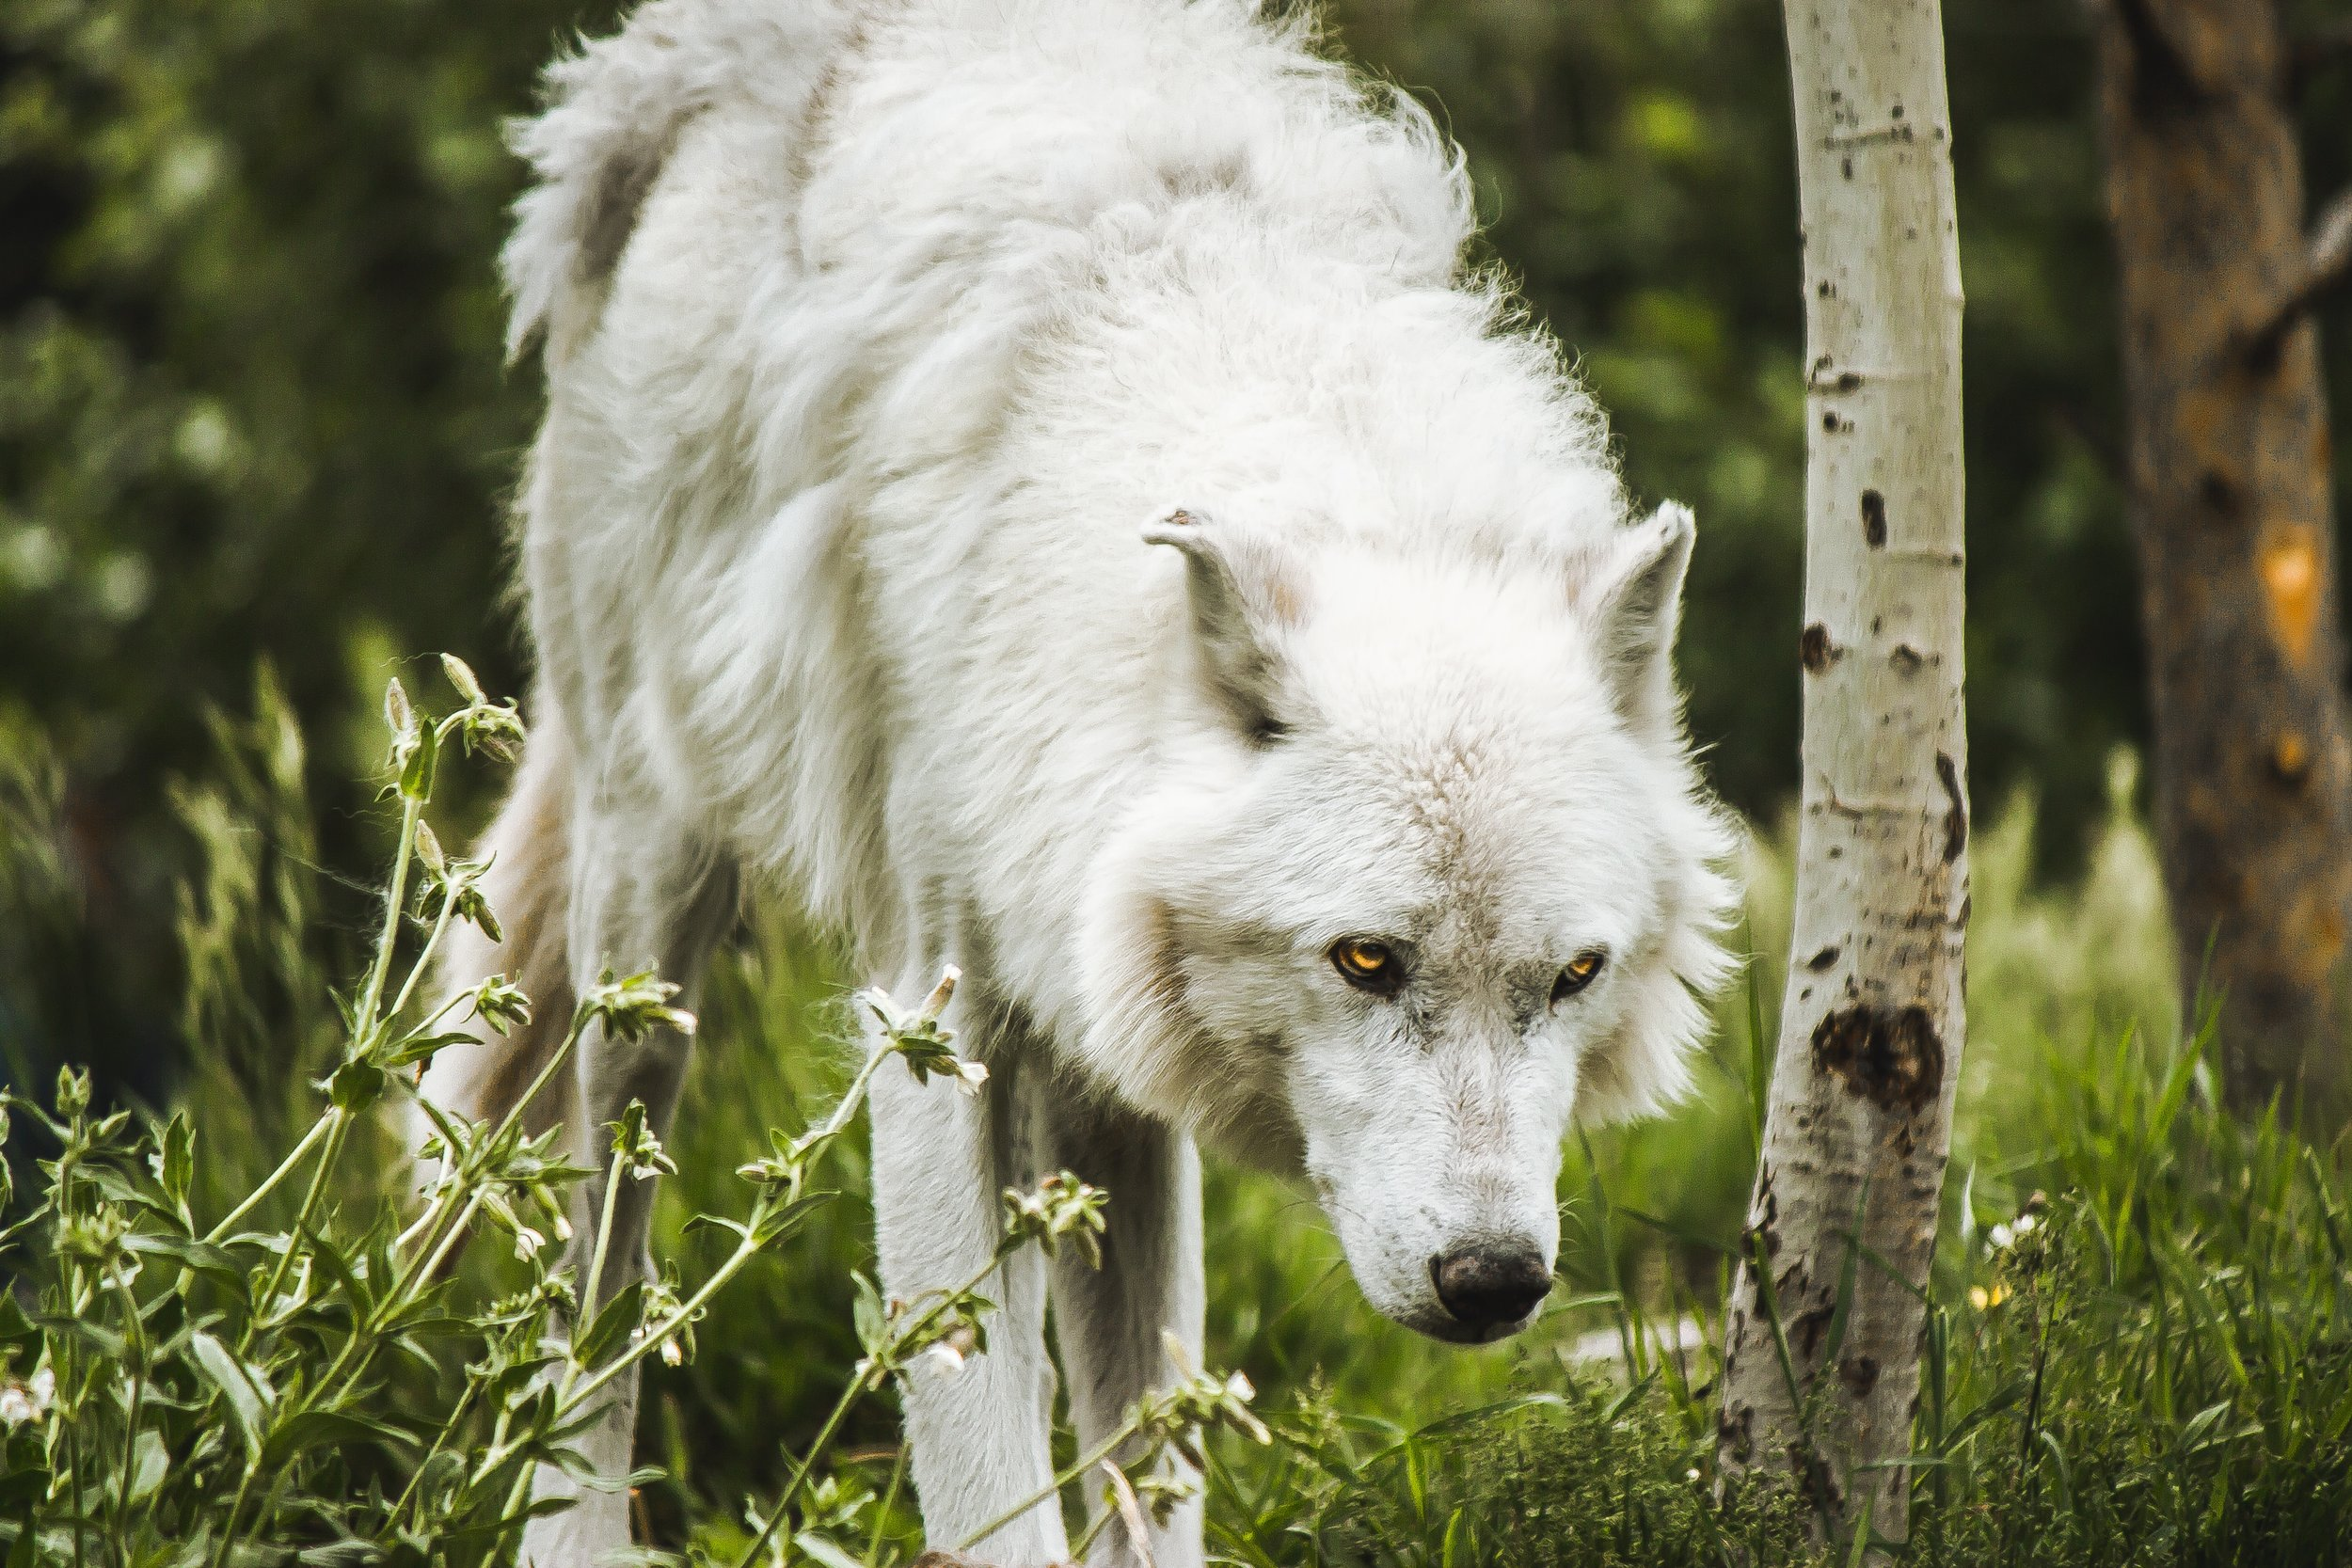 A large white wolf emerging from a forest.